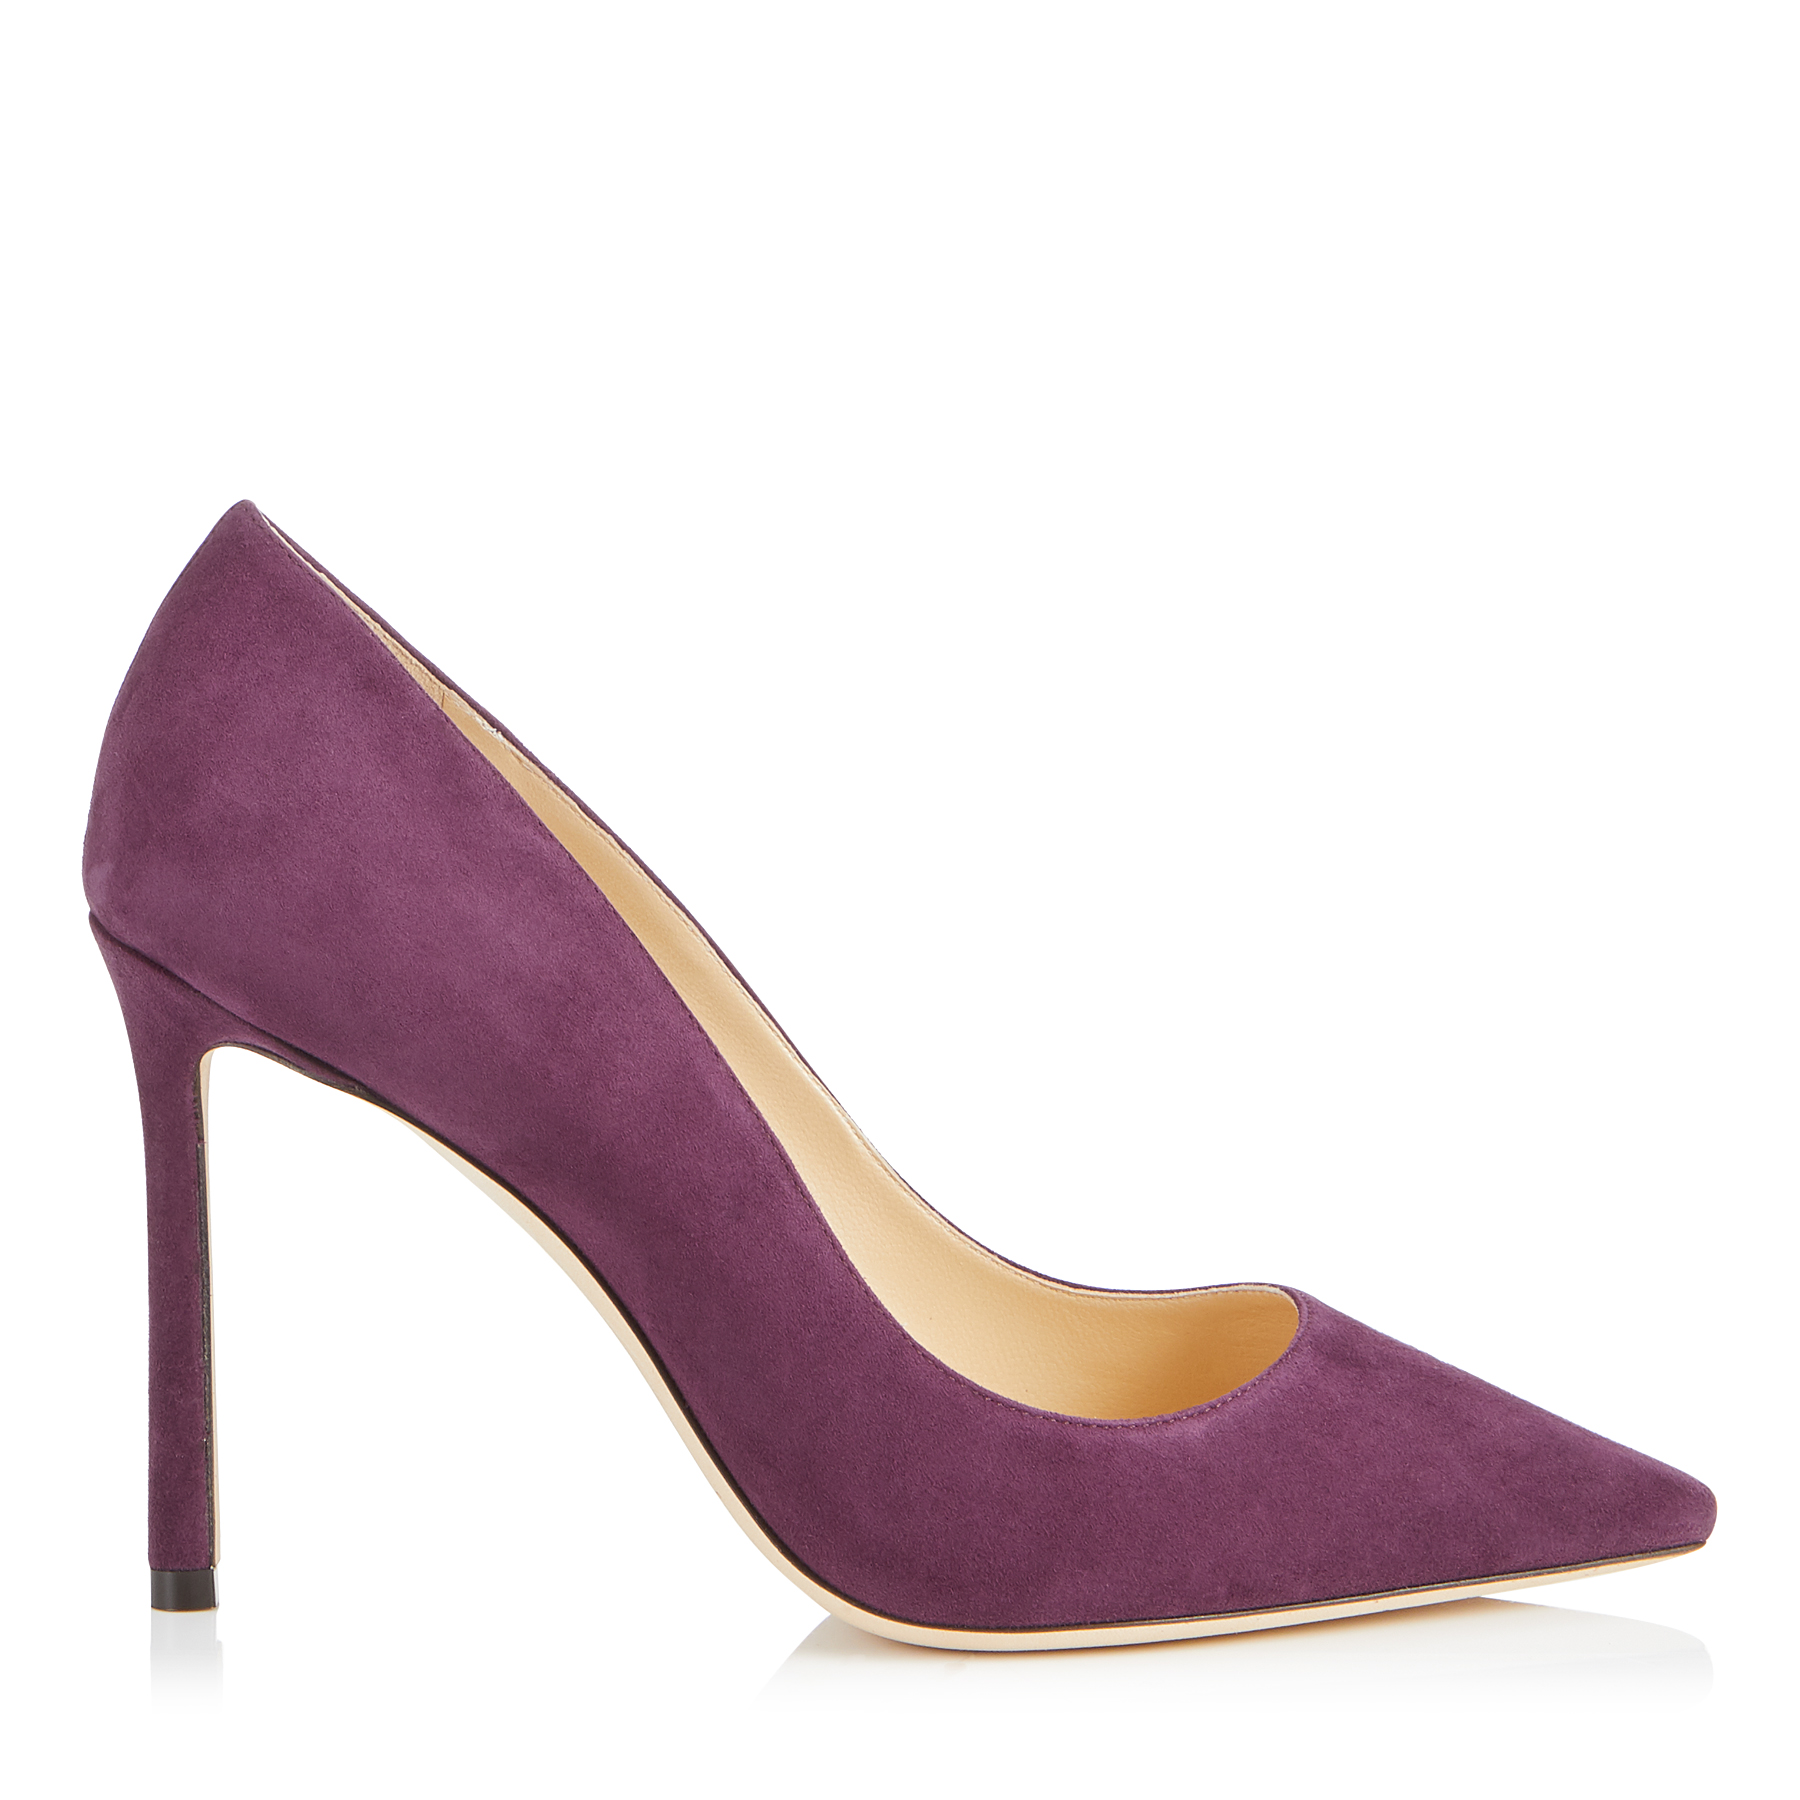 ROMY 100 Grape Suede Pointy Toe Pumps by Jimmy Choo